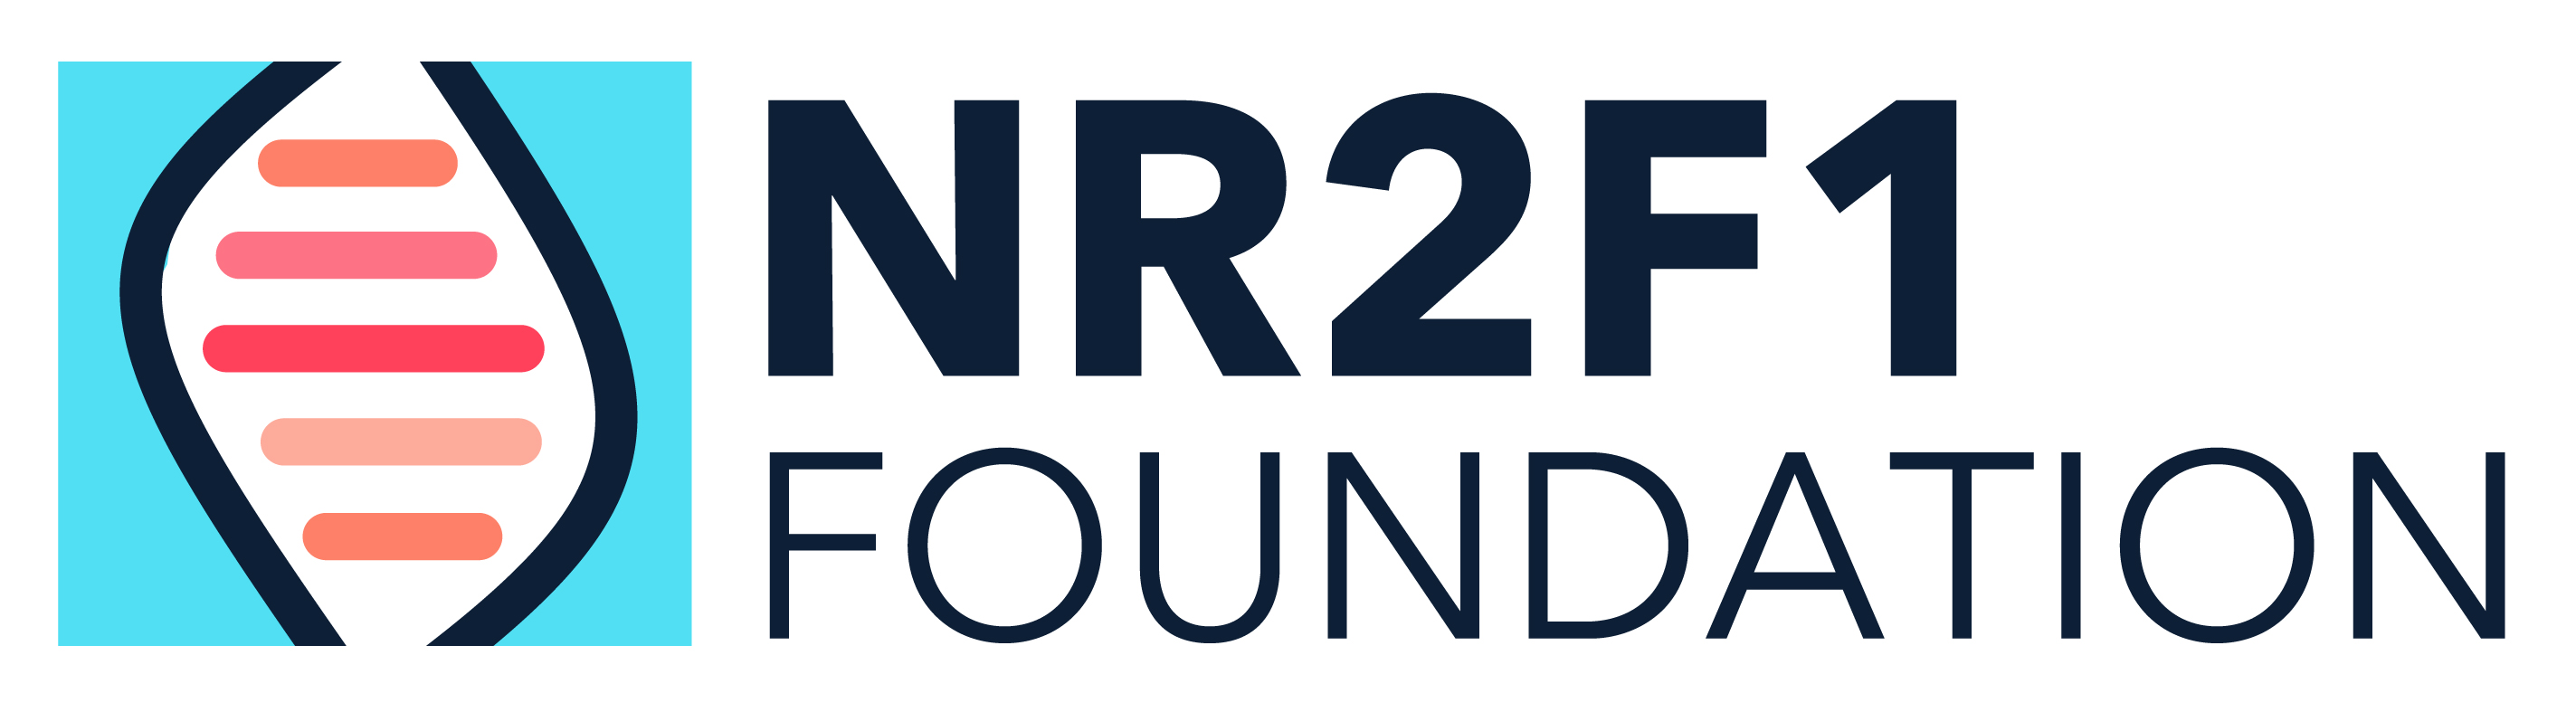 NR2F1 Foundation